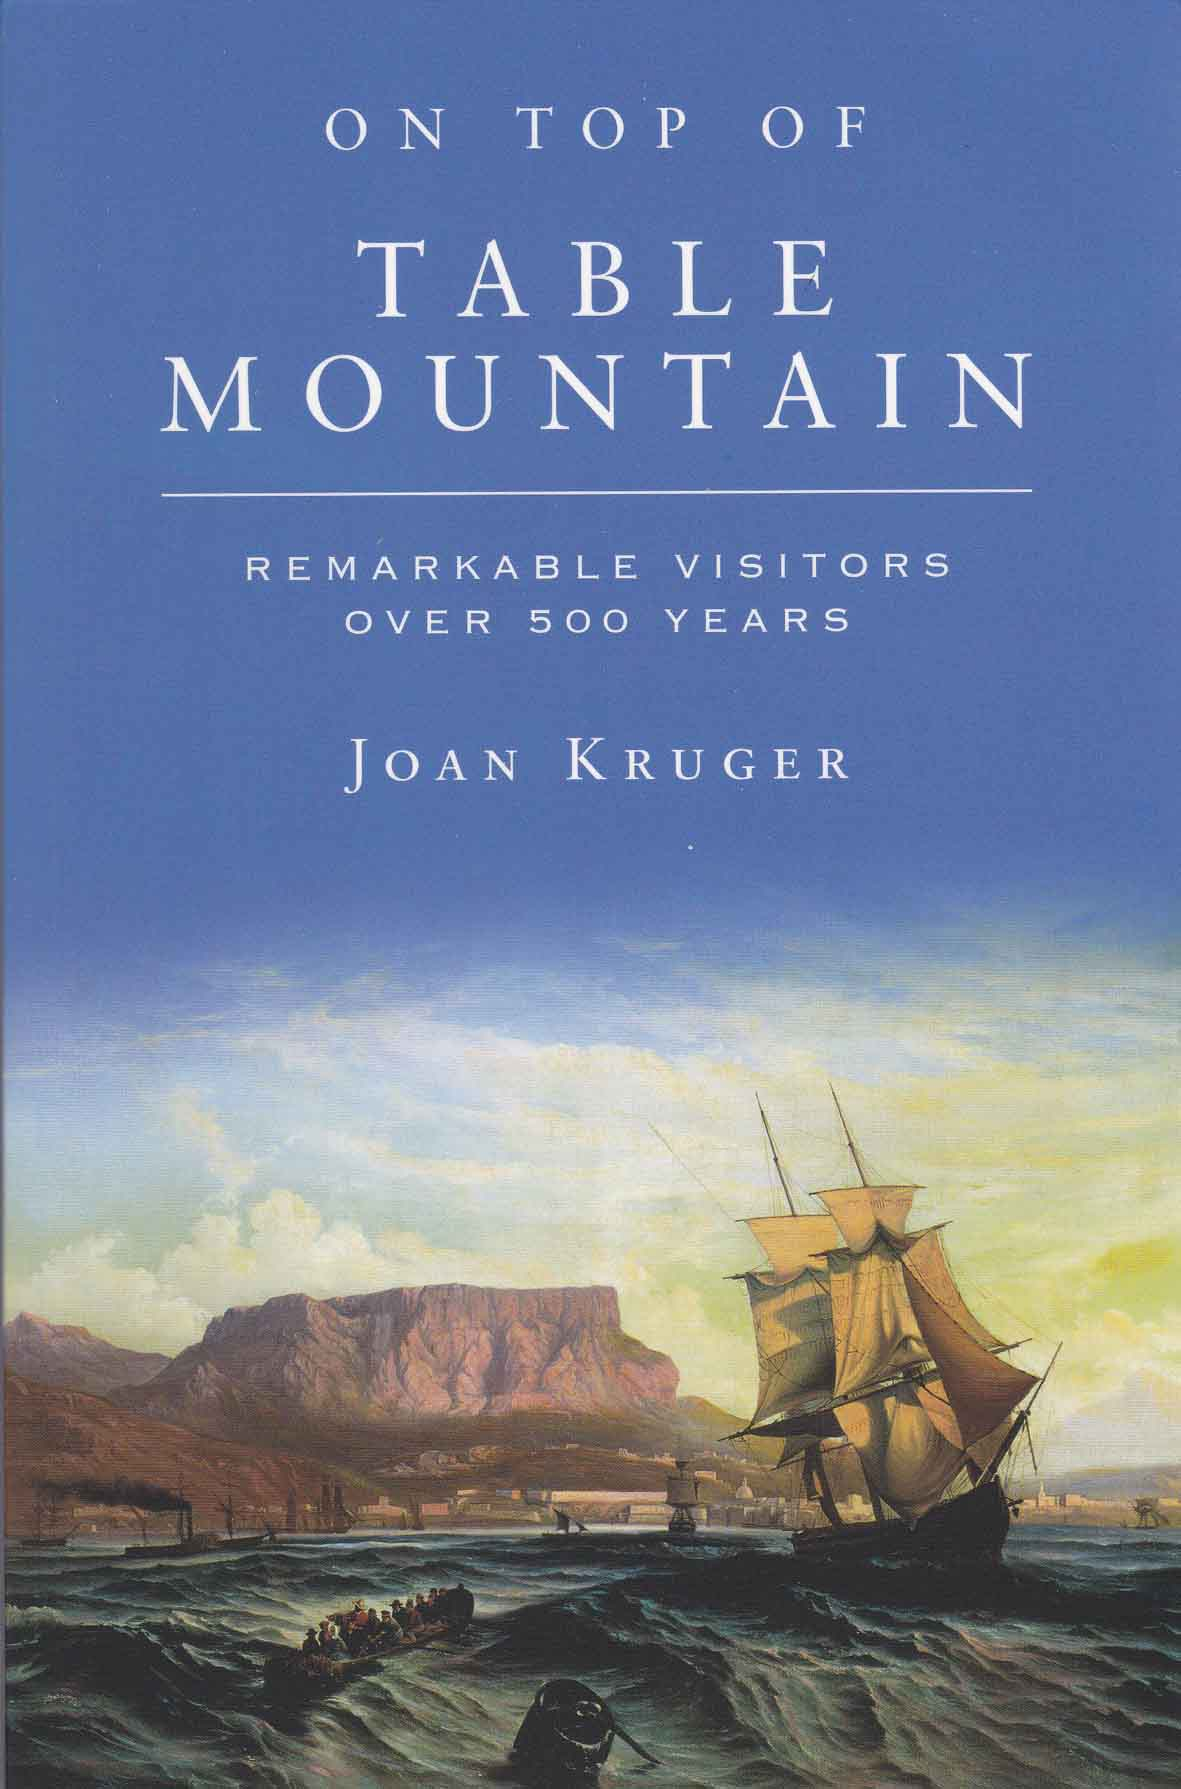 Book cover for On top of Table Mountain: remarkable vistors over 500 years by Joan Kruger published by Africana Publishers